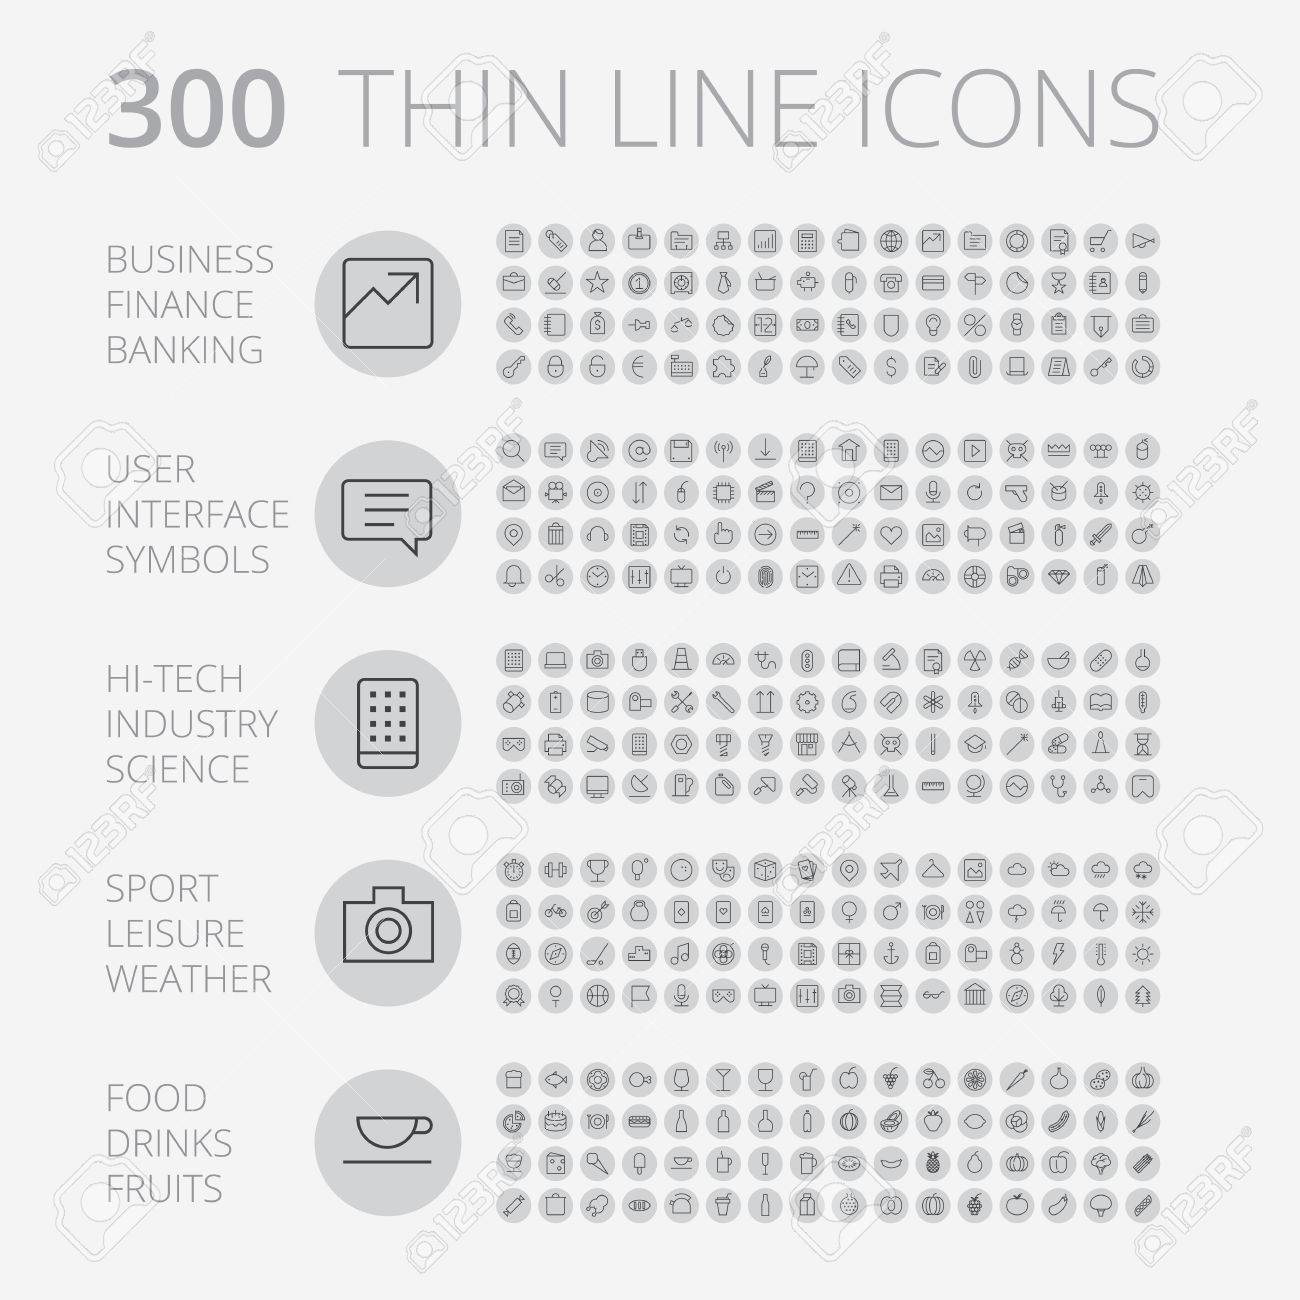 Thin Line Icons For Business, Interface, Leisure and Food. Vector - 58812594